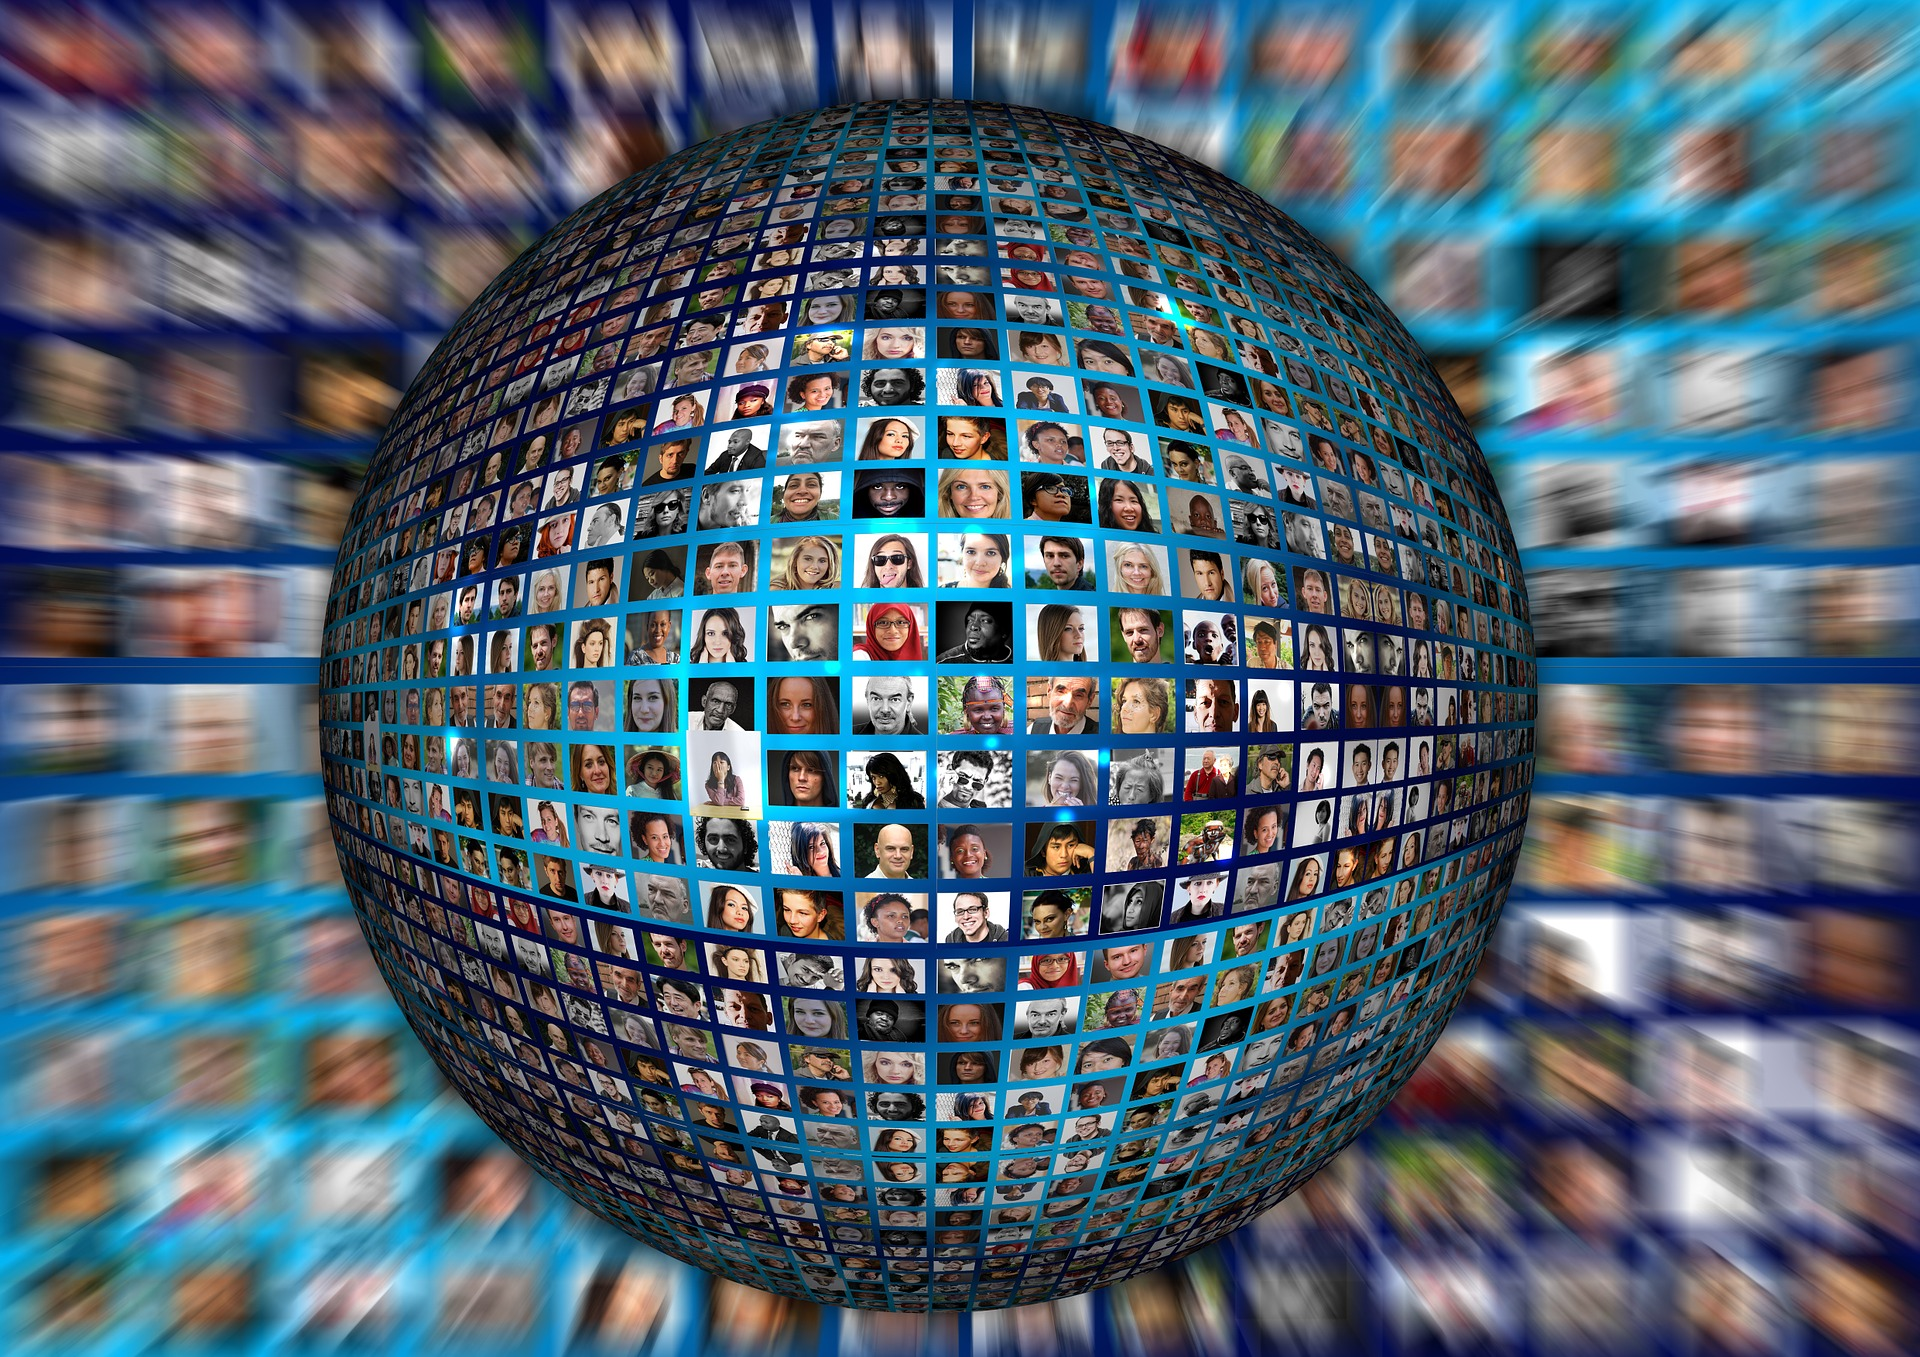 abstract image of the people of the world